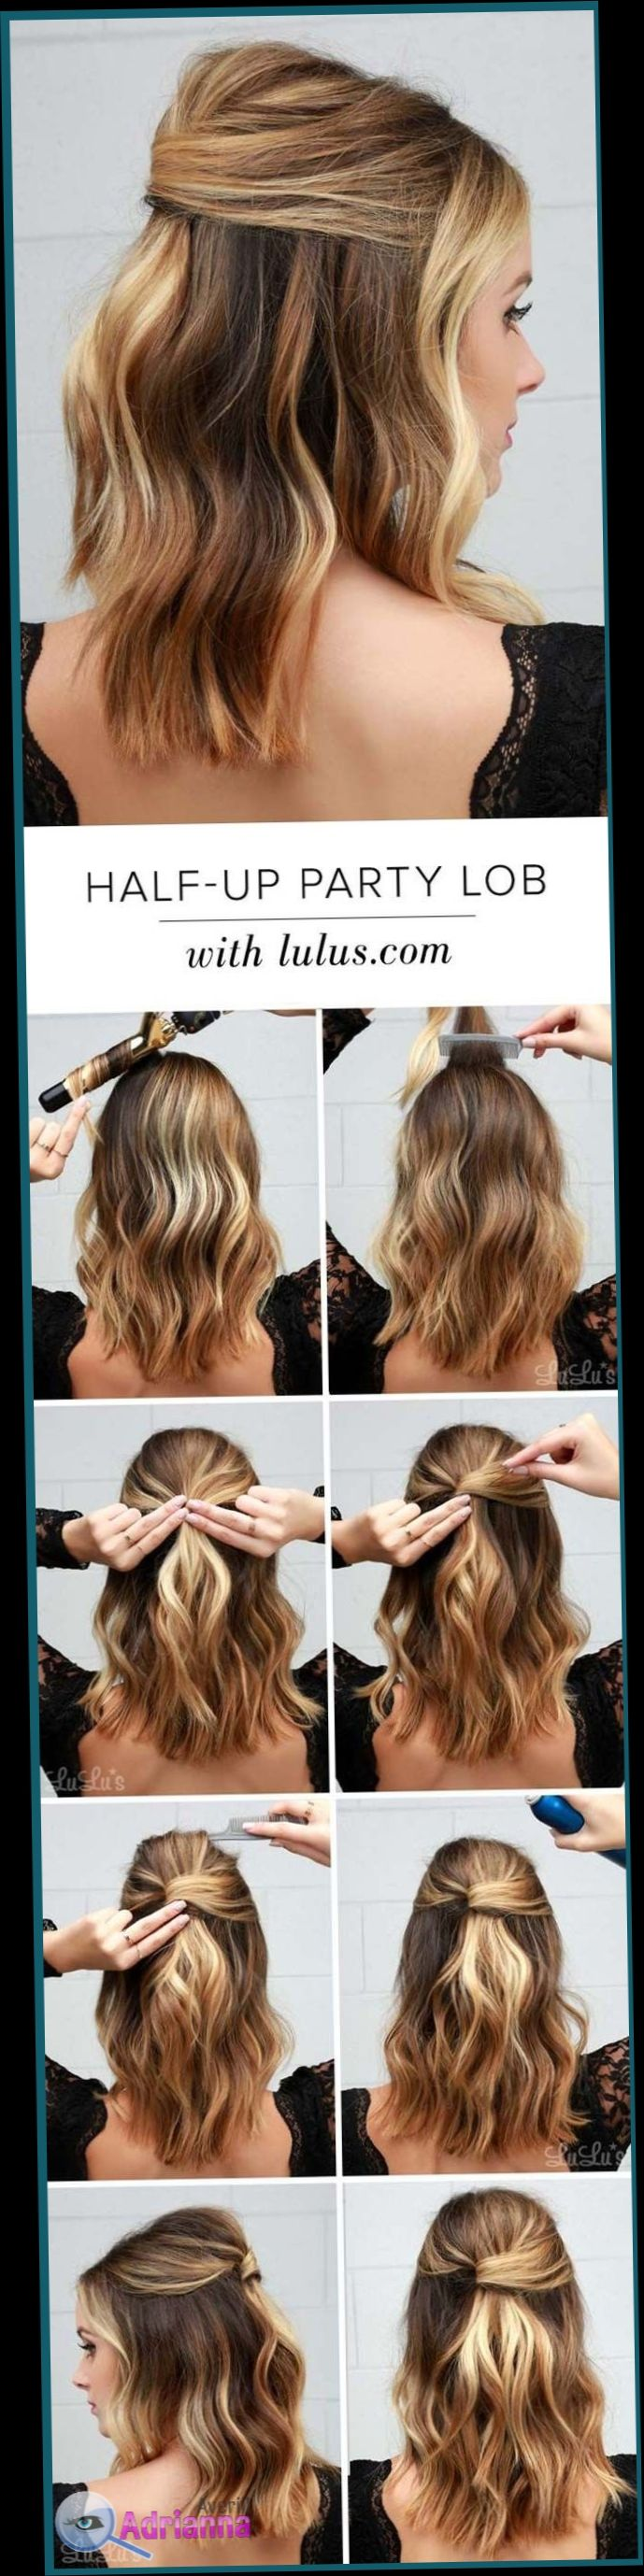 Easy Hairstyles For Short Hair To Do At Home Step By Step So That Our Limited Time Is Not Reflected In Our L Hair Styles Medium Hair Styles Long Hair Styles